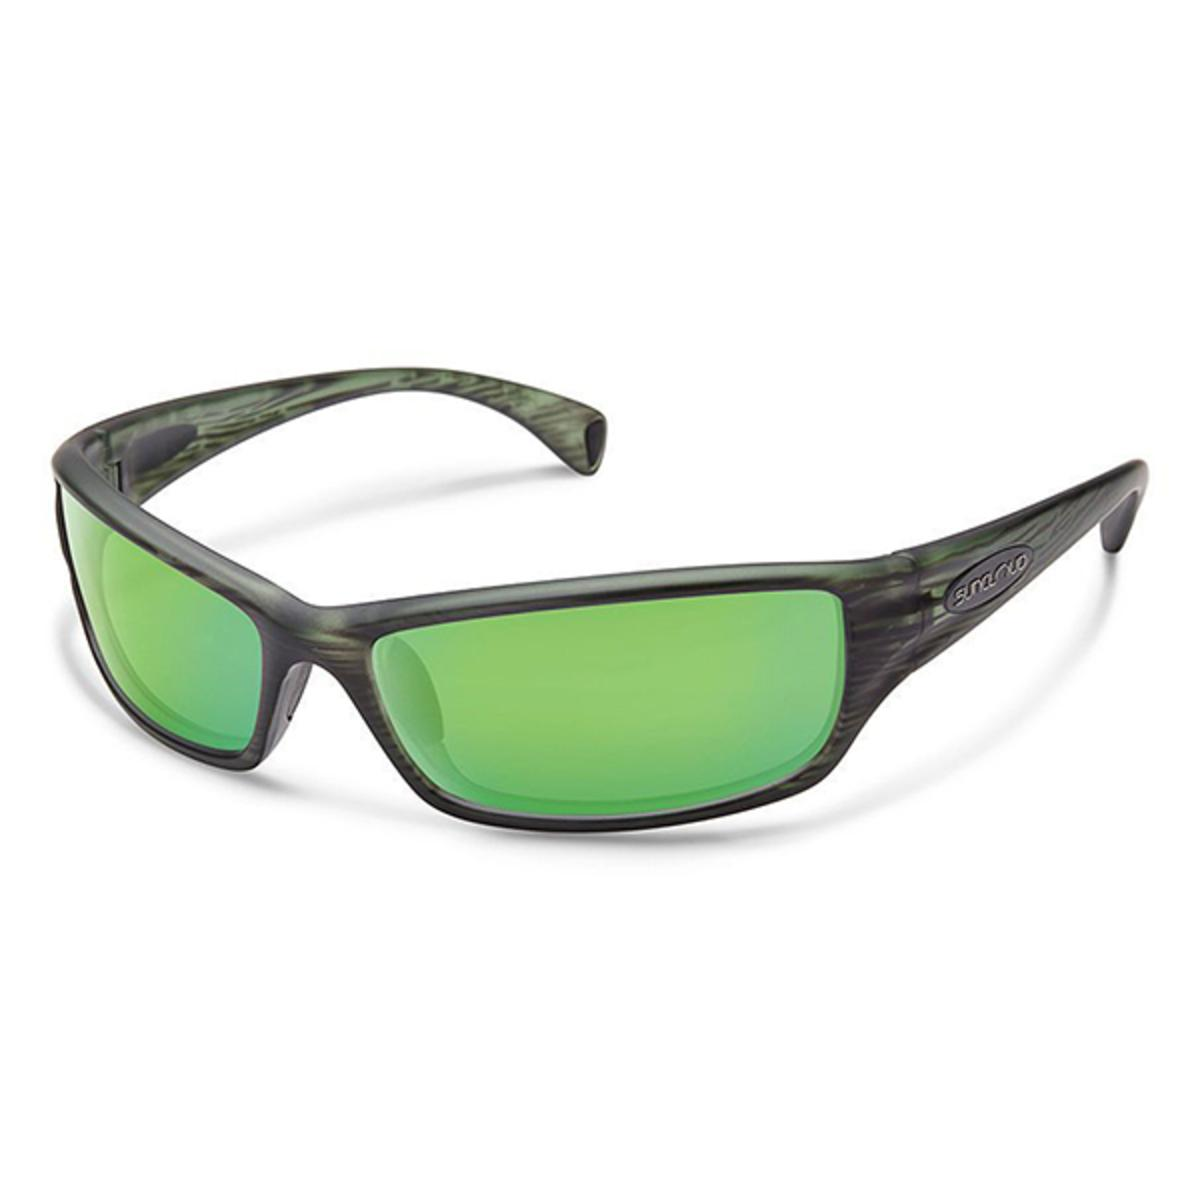 NEW Suncloud Mayor Injection Sunglasses Green Mirror Lens Tortoise Frame